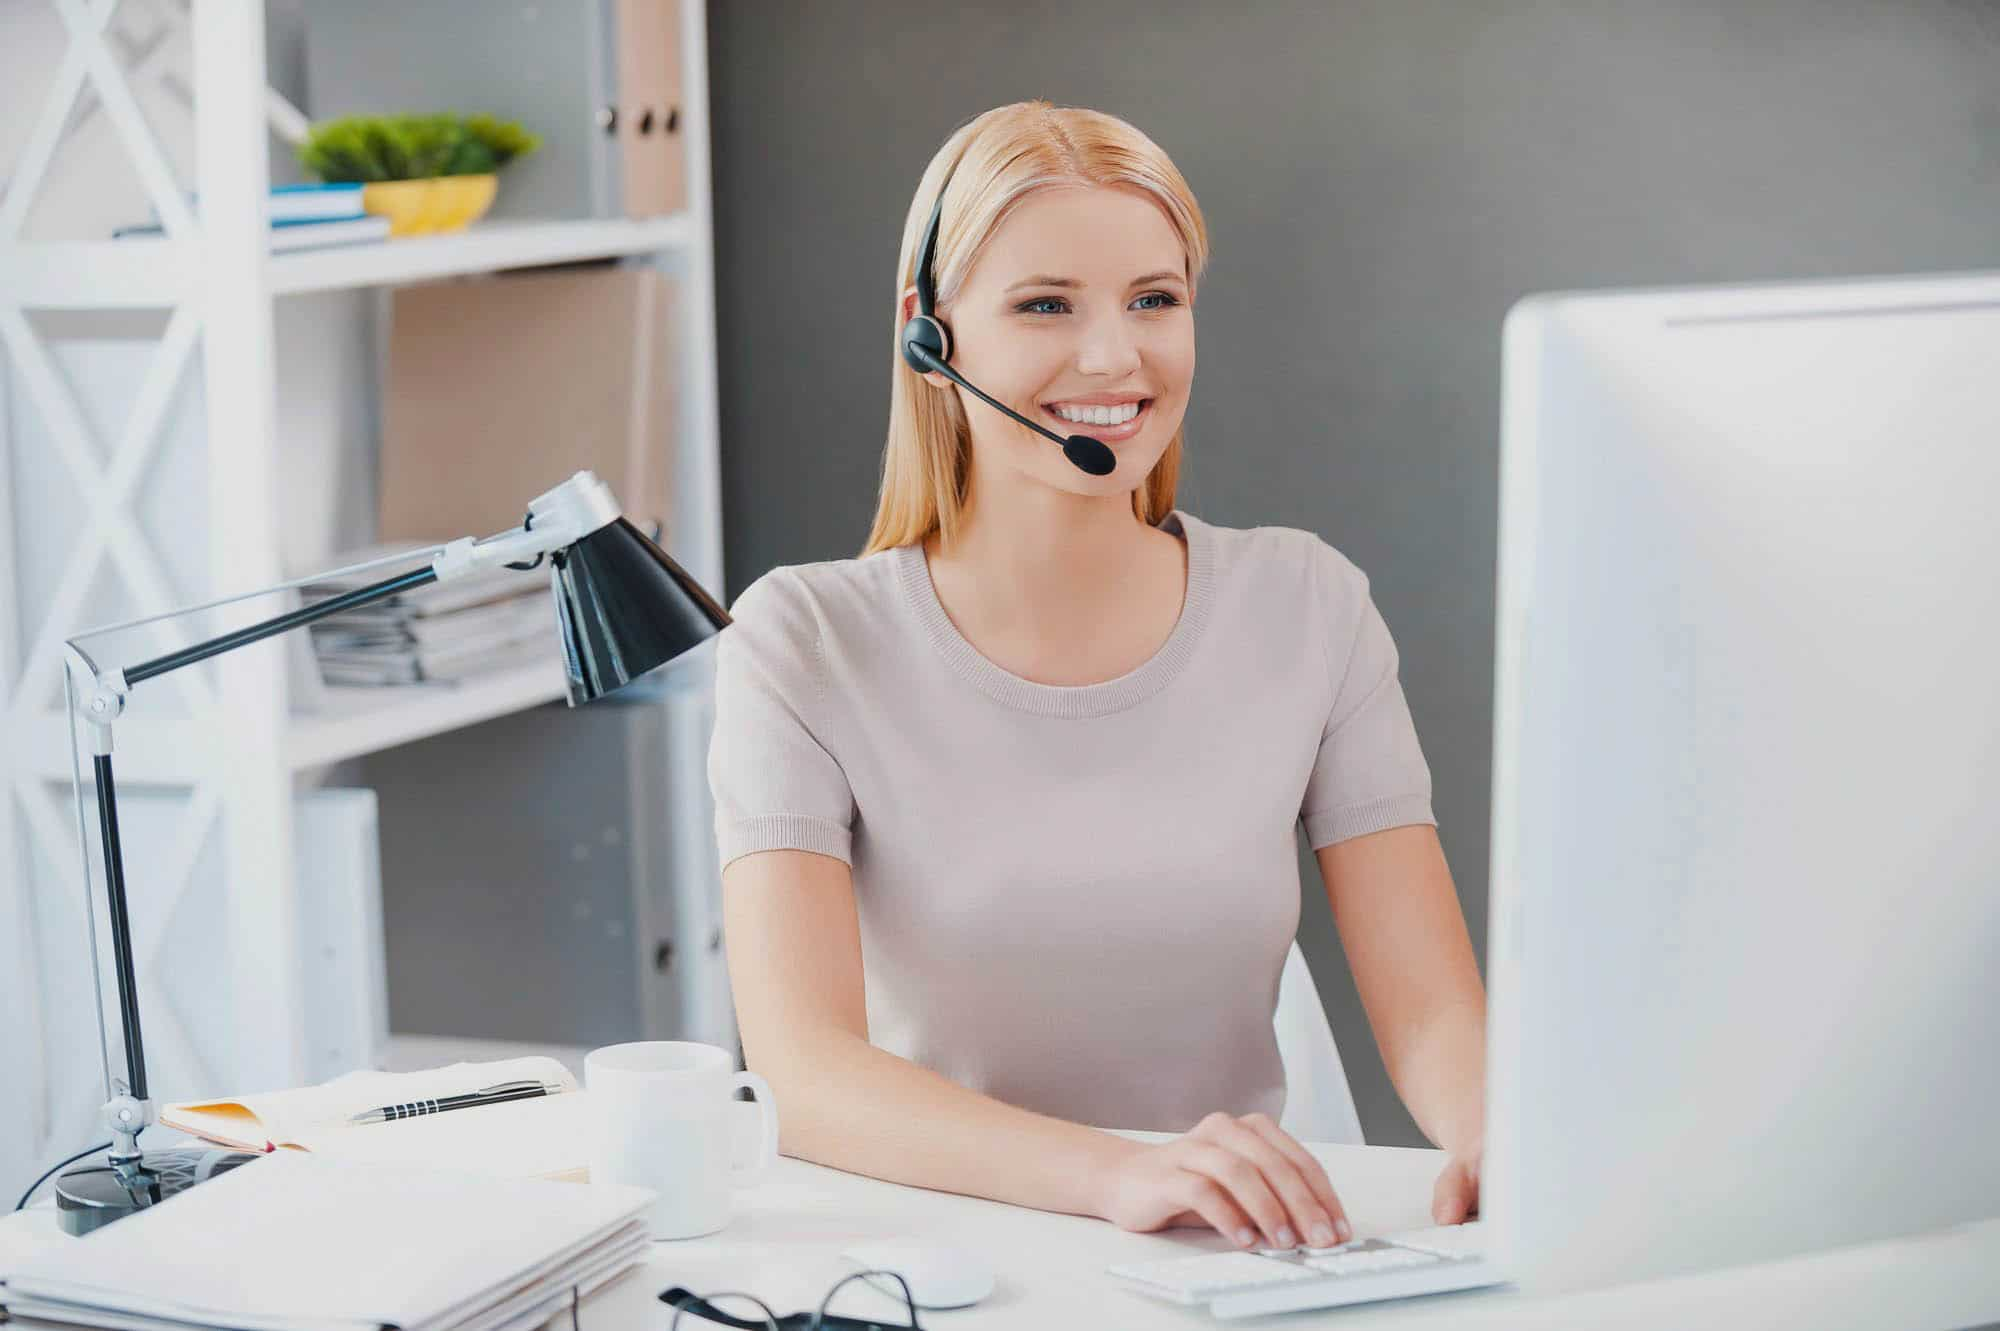 Customer service representative at work. Beautiful young woman in headset working at the computer and smiling while sitting at her working place in office